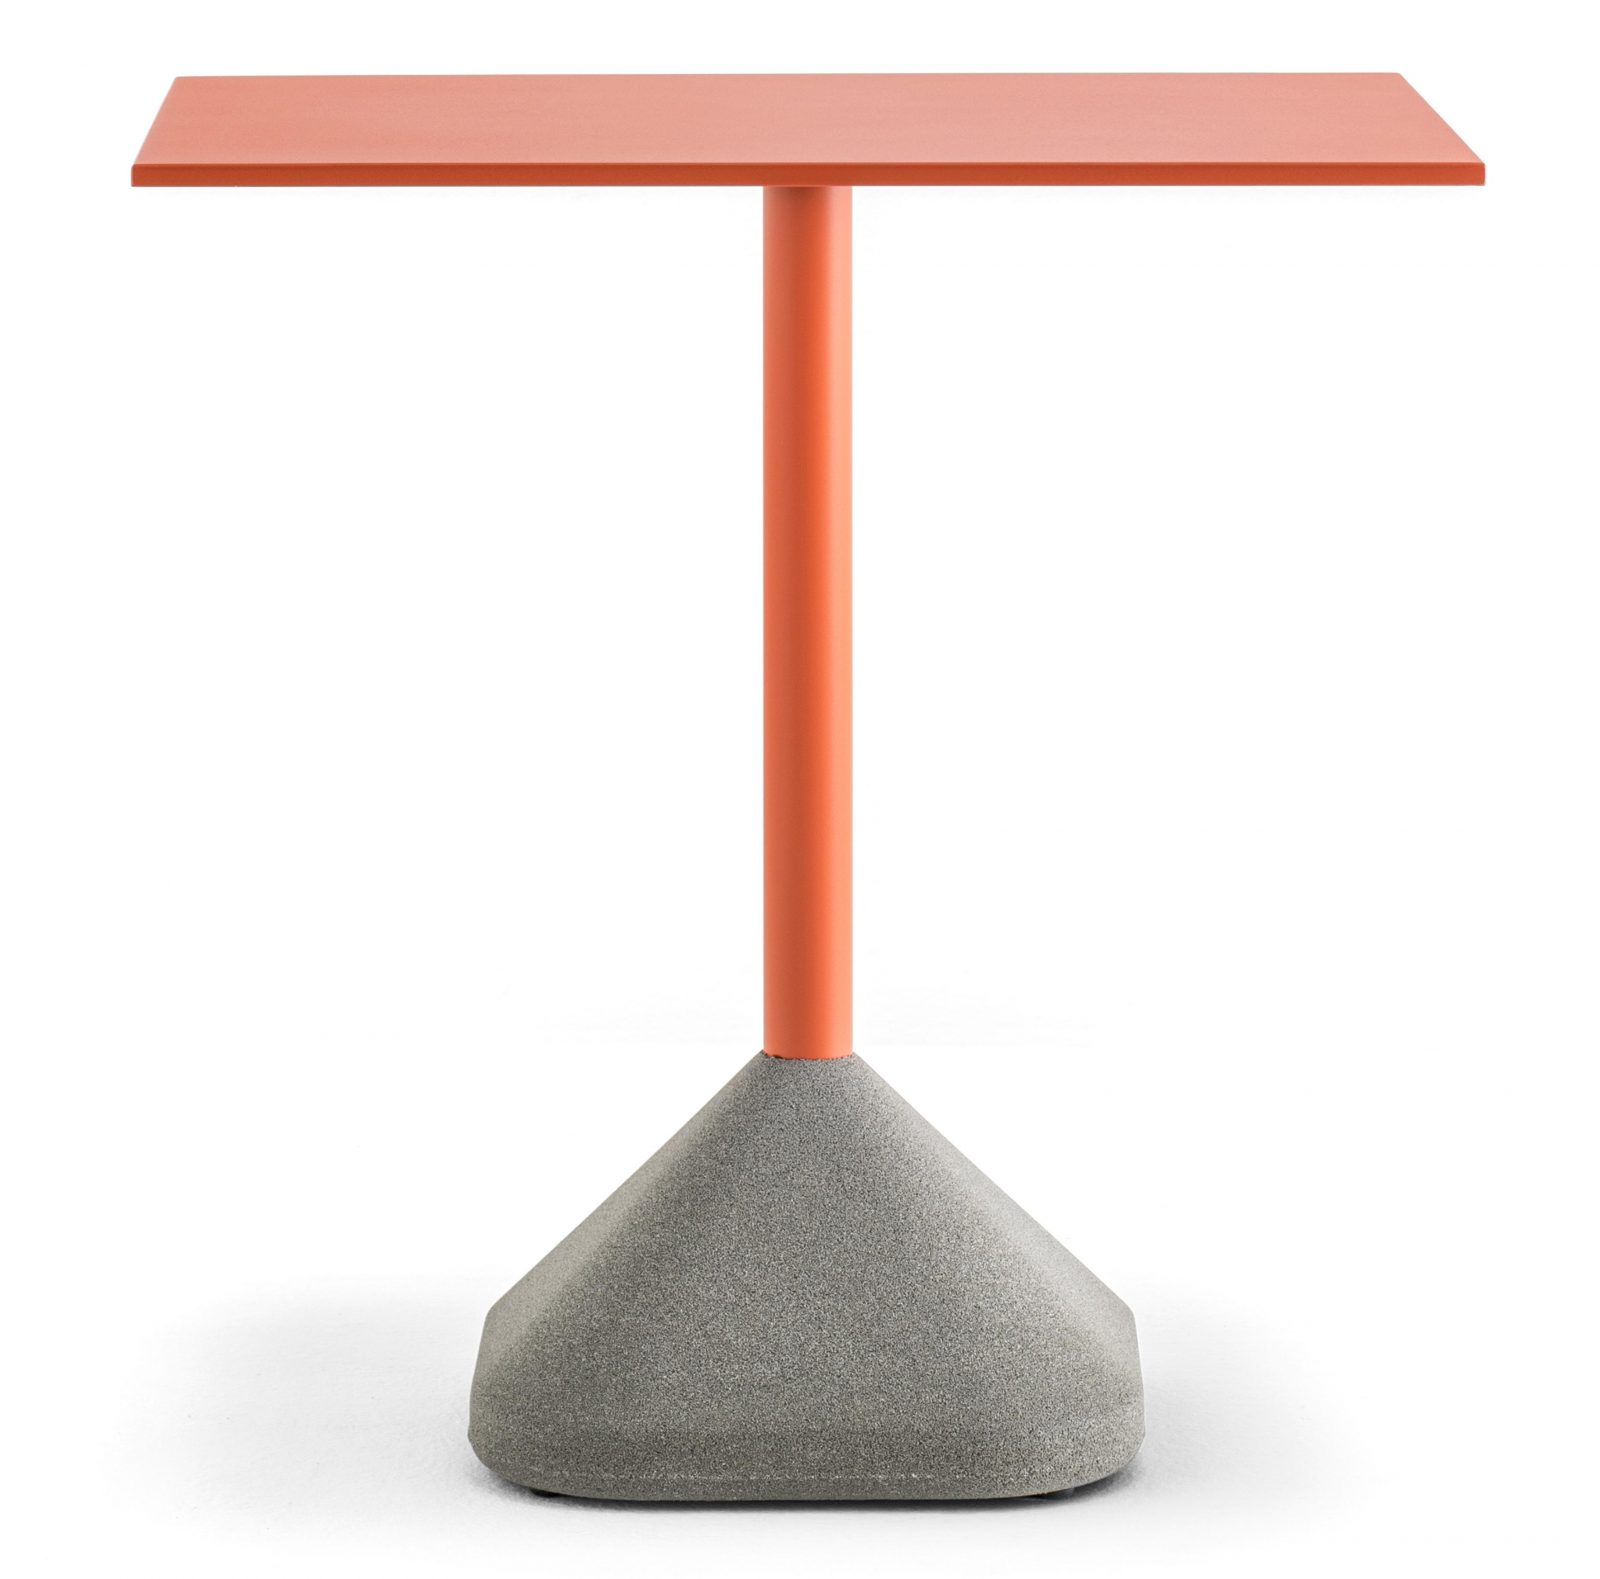 Concrete Dining Table Base Telegraph Contract Furniture : Concrete Base from www.telegraphcontractfurniture.com size 1600 x 1579 jpeg 133kB